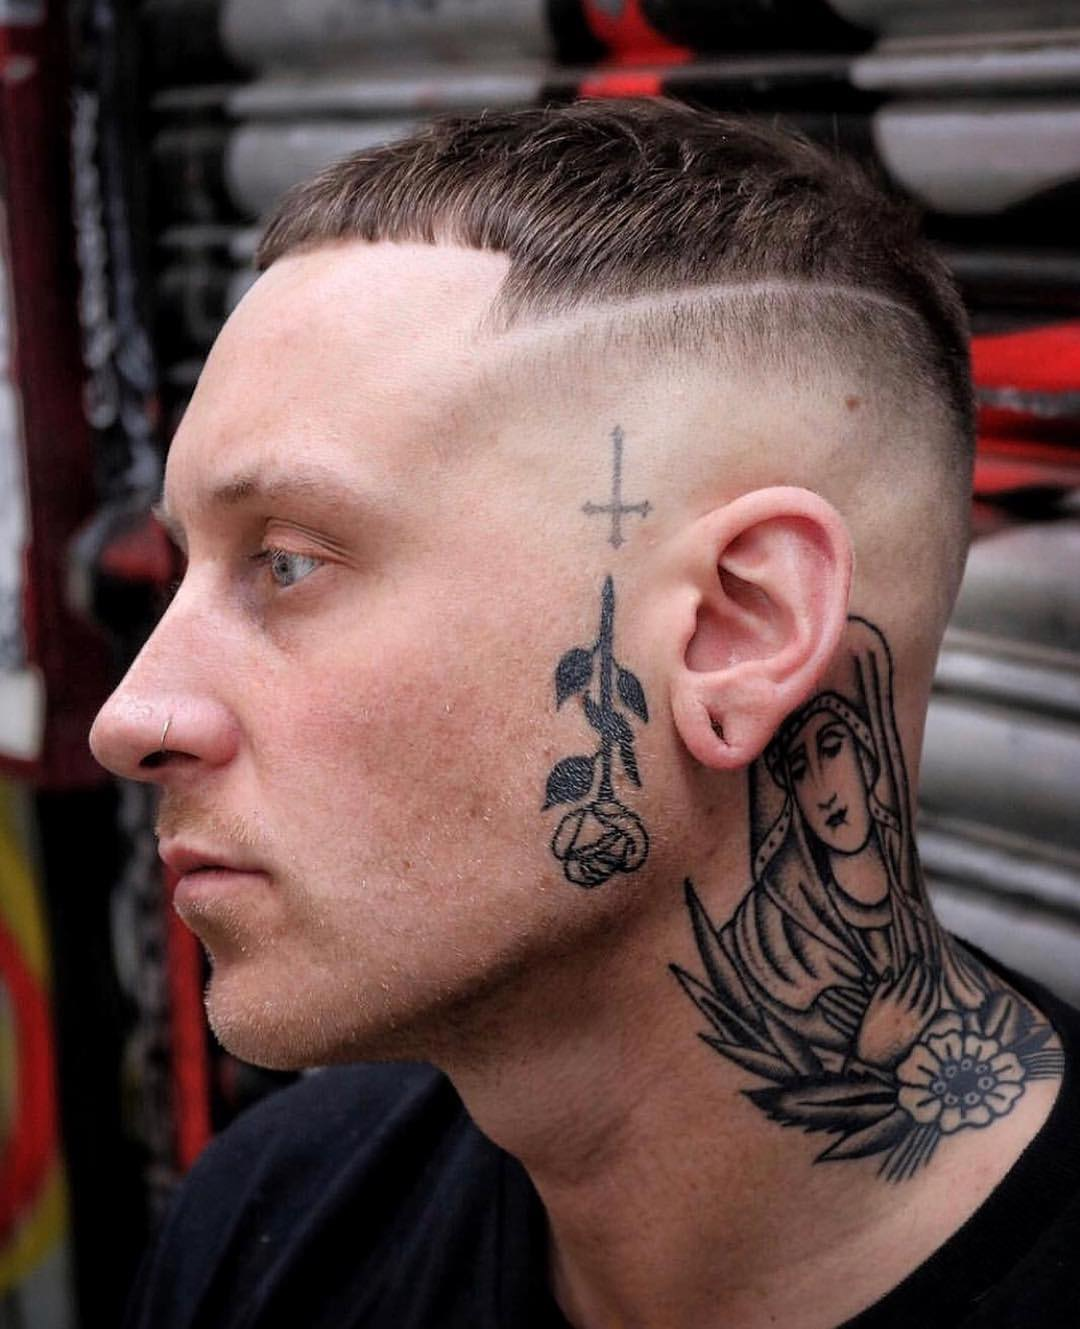 Tattooed Temple with Shaved Side Hairline